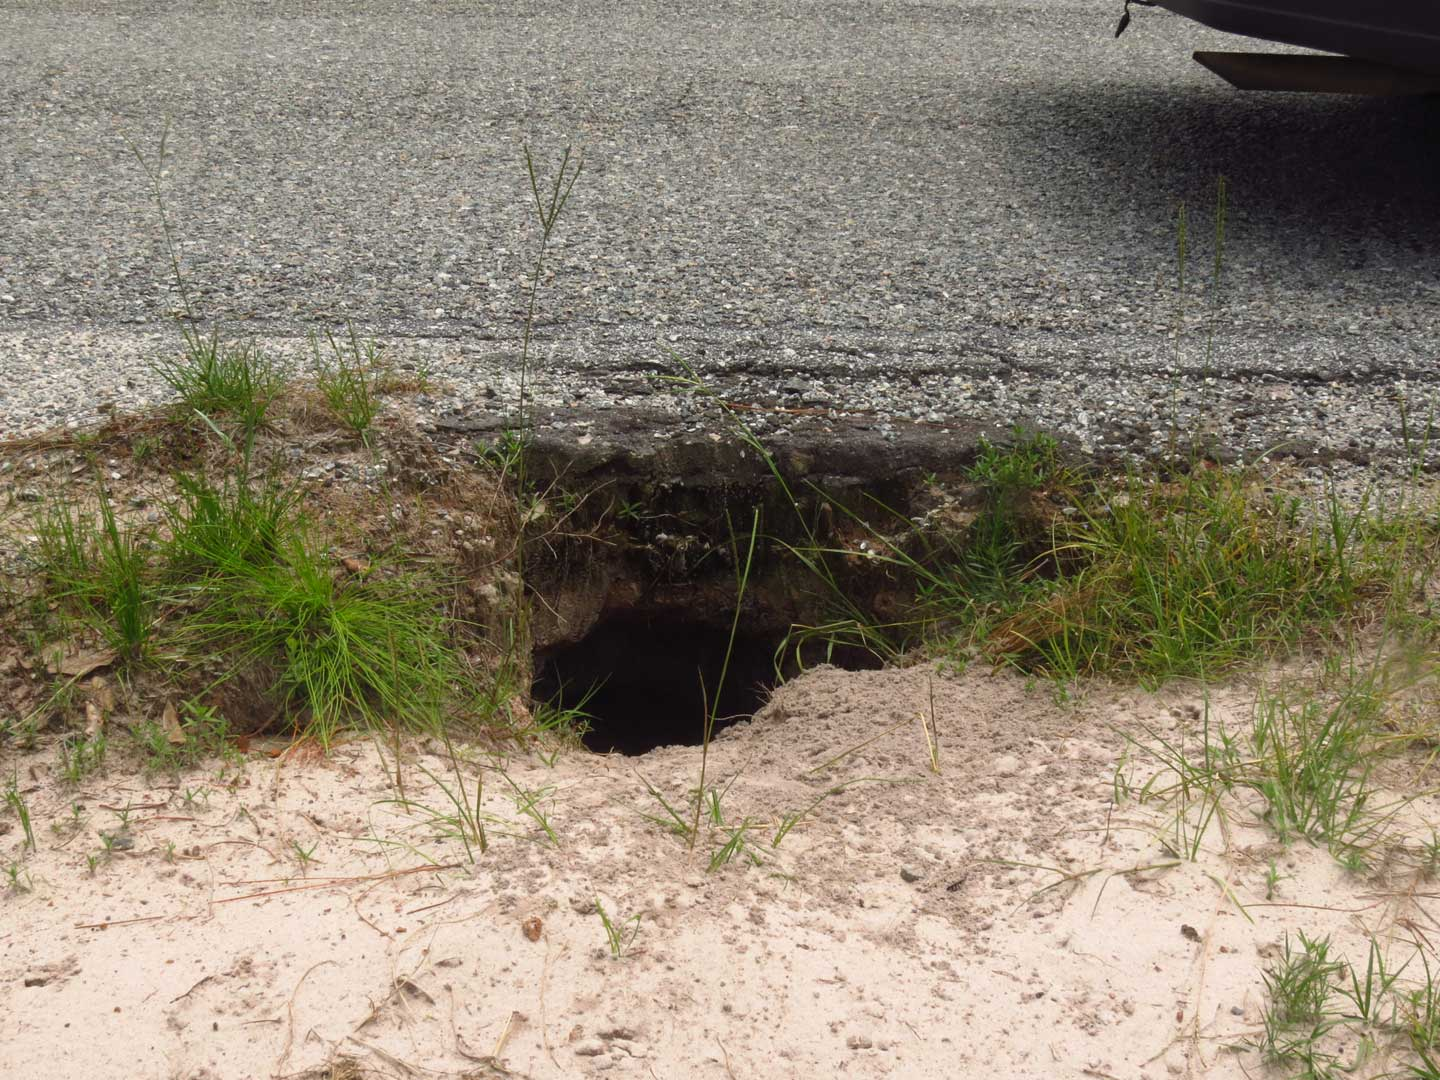 Gopher Tortoise burrow under the entrance road at Okefenokee NWR